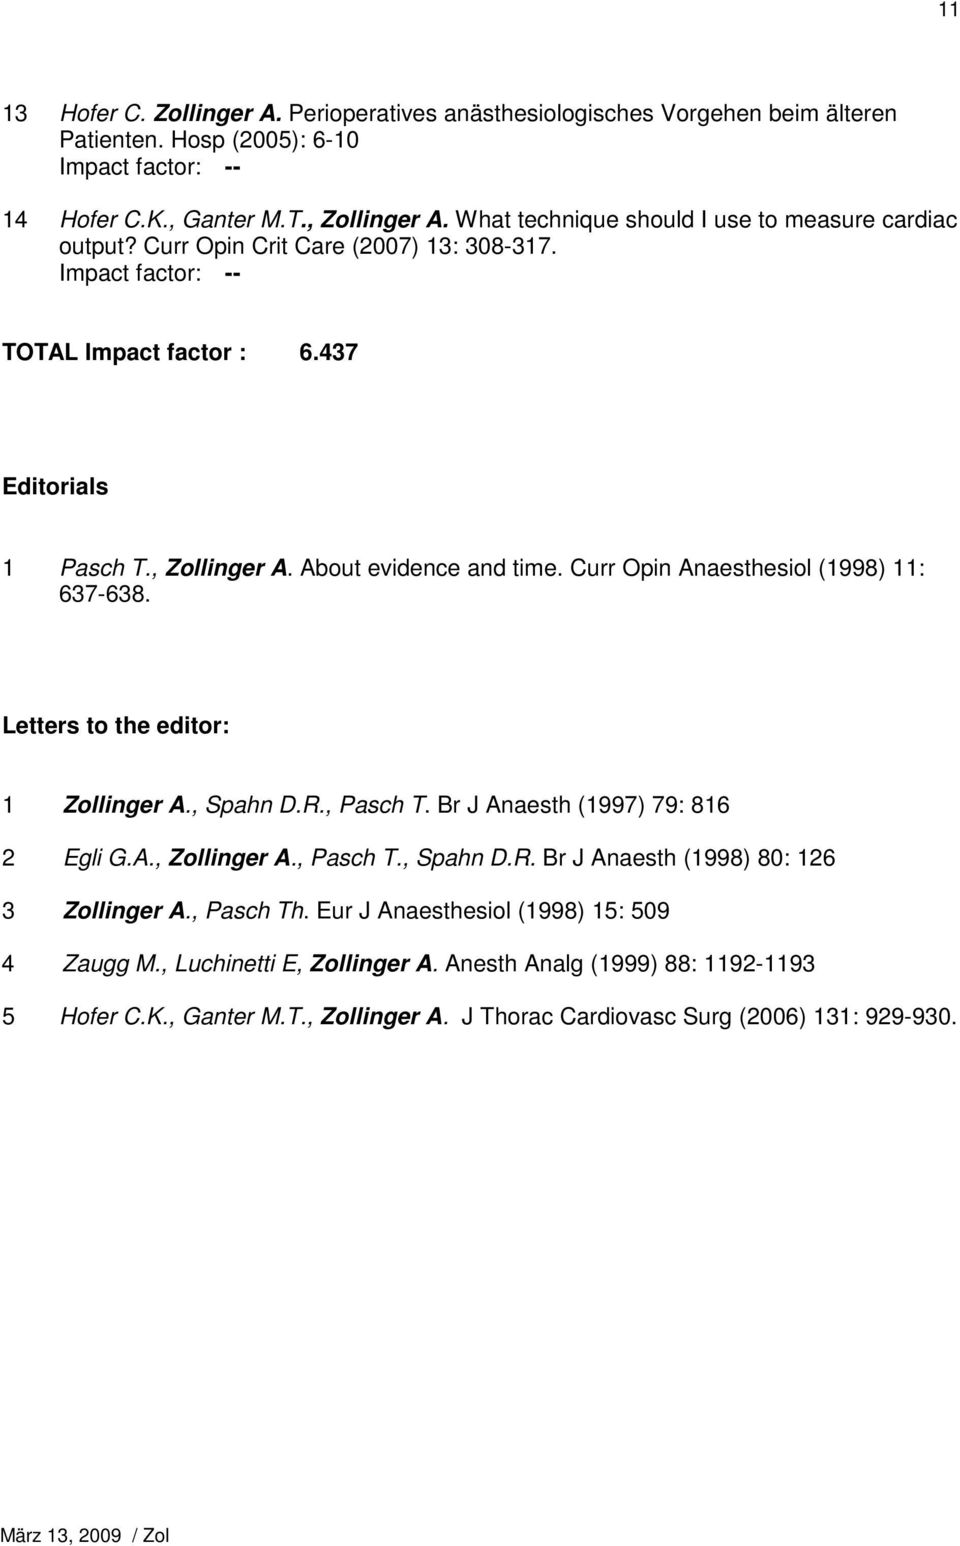 Curr Opin Anaesthesiol (1998) 11: 637-638. Letters to the editor: 1 Zollinger A., Spahn D.R., Pasch T. Br J Anaesth (1997) 79: 816 2 Egli G.A., Zollinger A., Pasch T., Spahn D.R. Br J Anaesth (1998) 80: 126 3 Zollinger A.